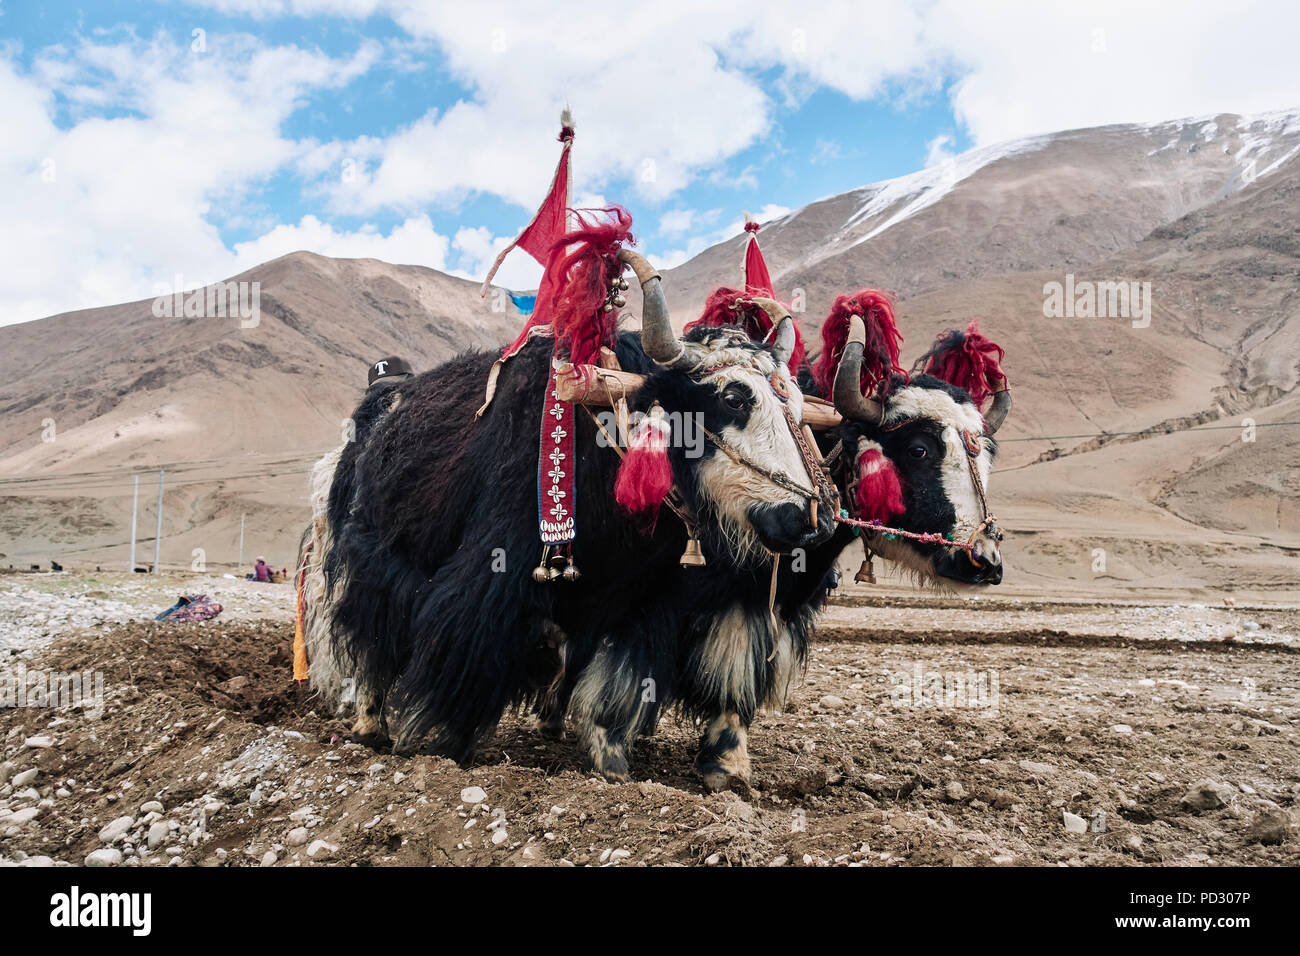 Yaks dressed up to work on field, Namco, Xizang, China - Stock Image